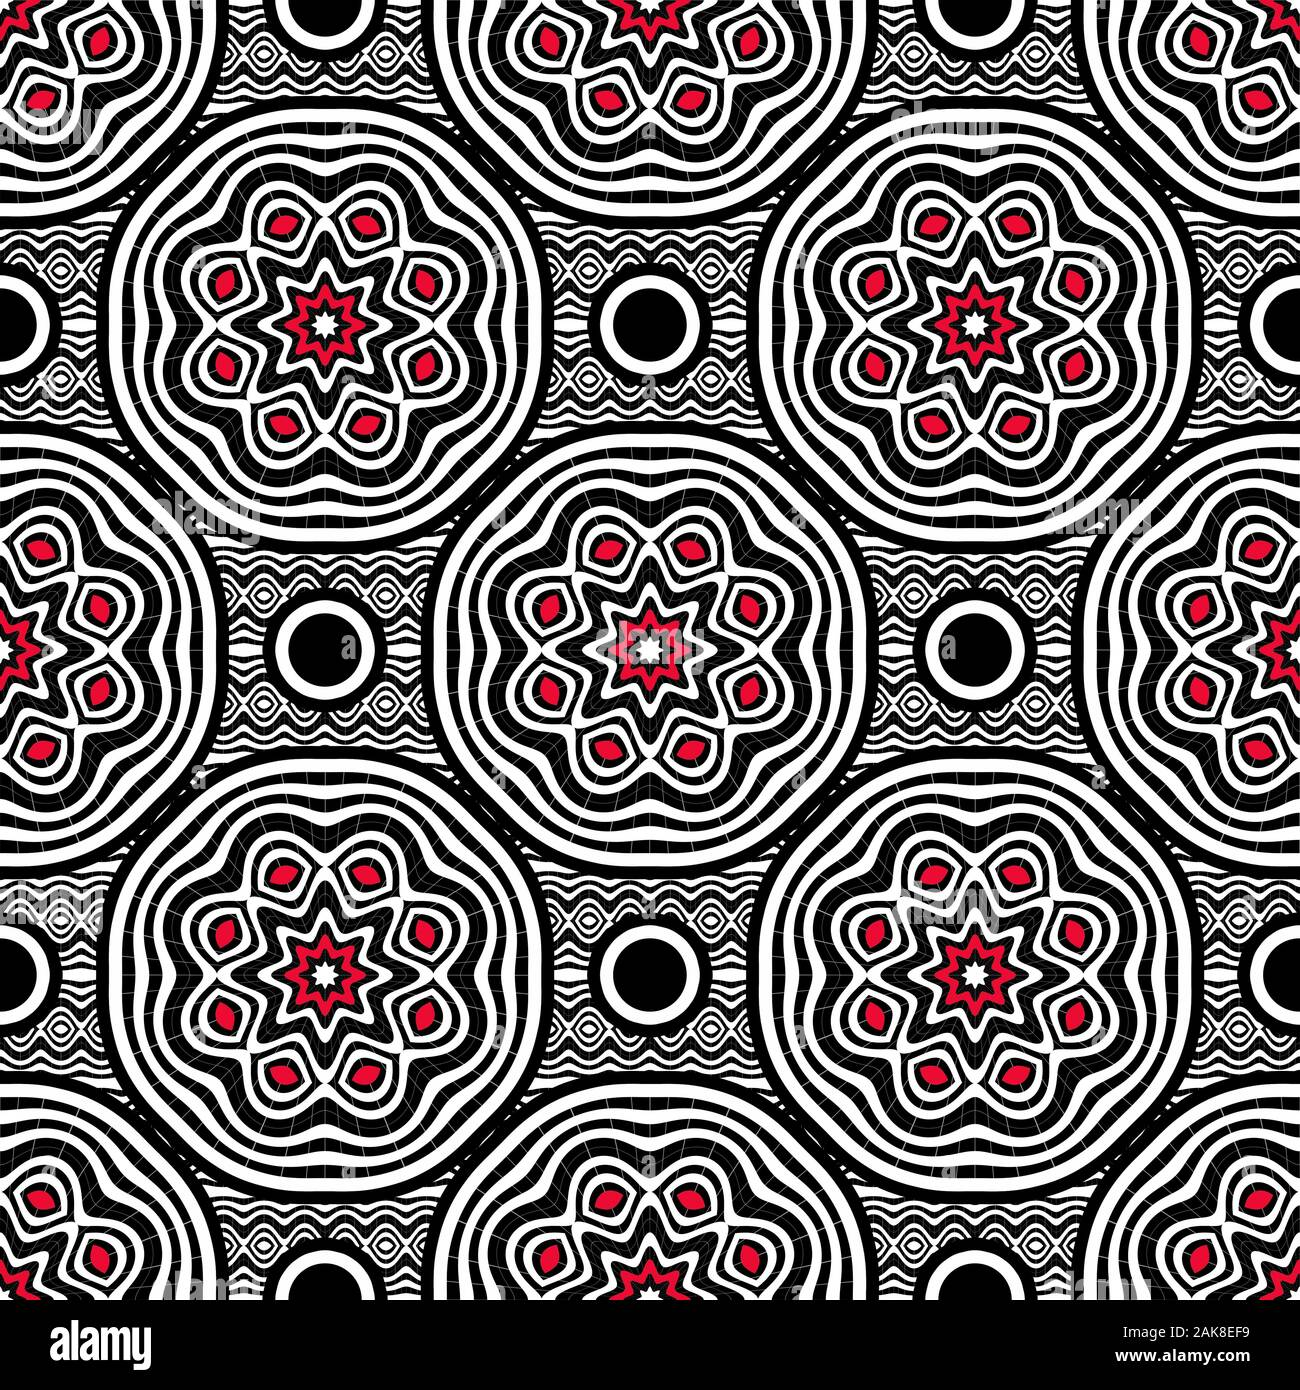 Seamless geometric pattern in black and white, with some contrasting red elements. Stock Photo